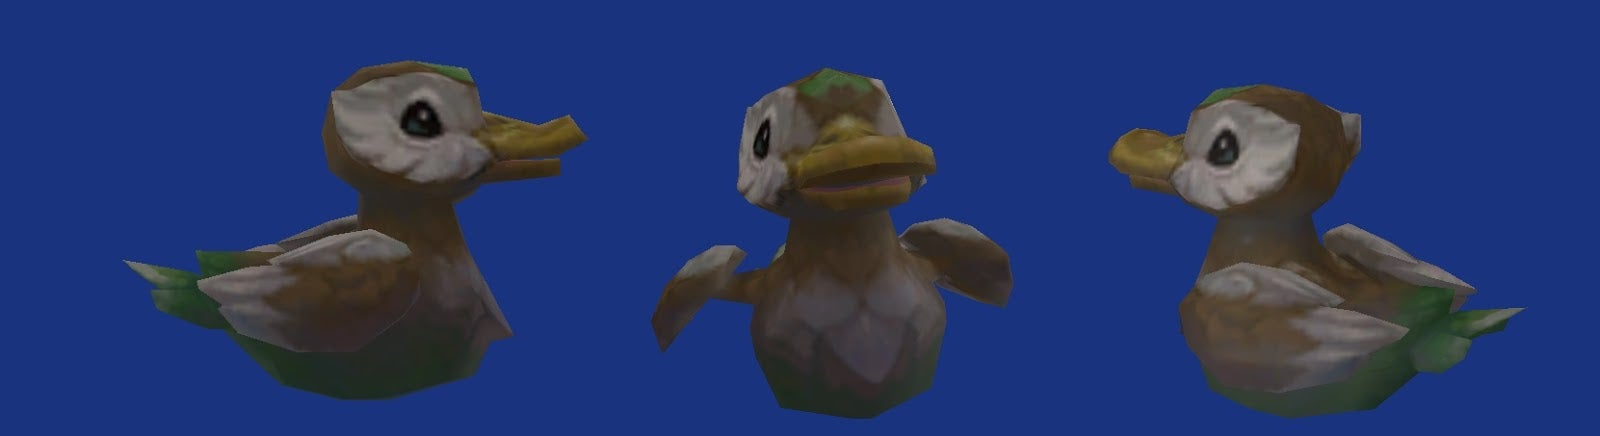 Lesser-Spotted Duck Elusive To Players Of League of Legends